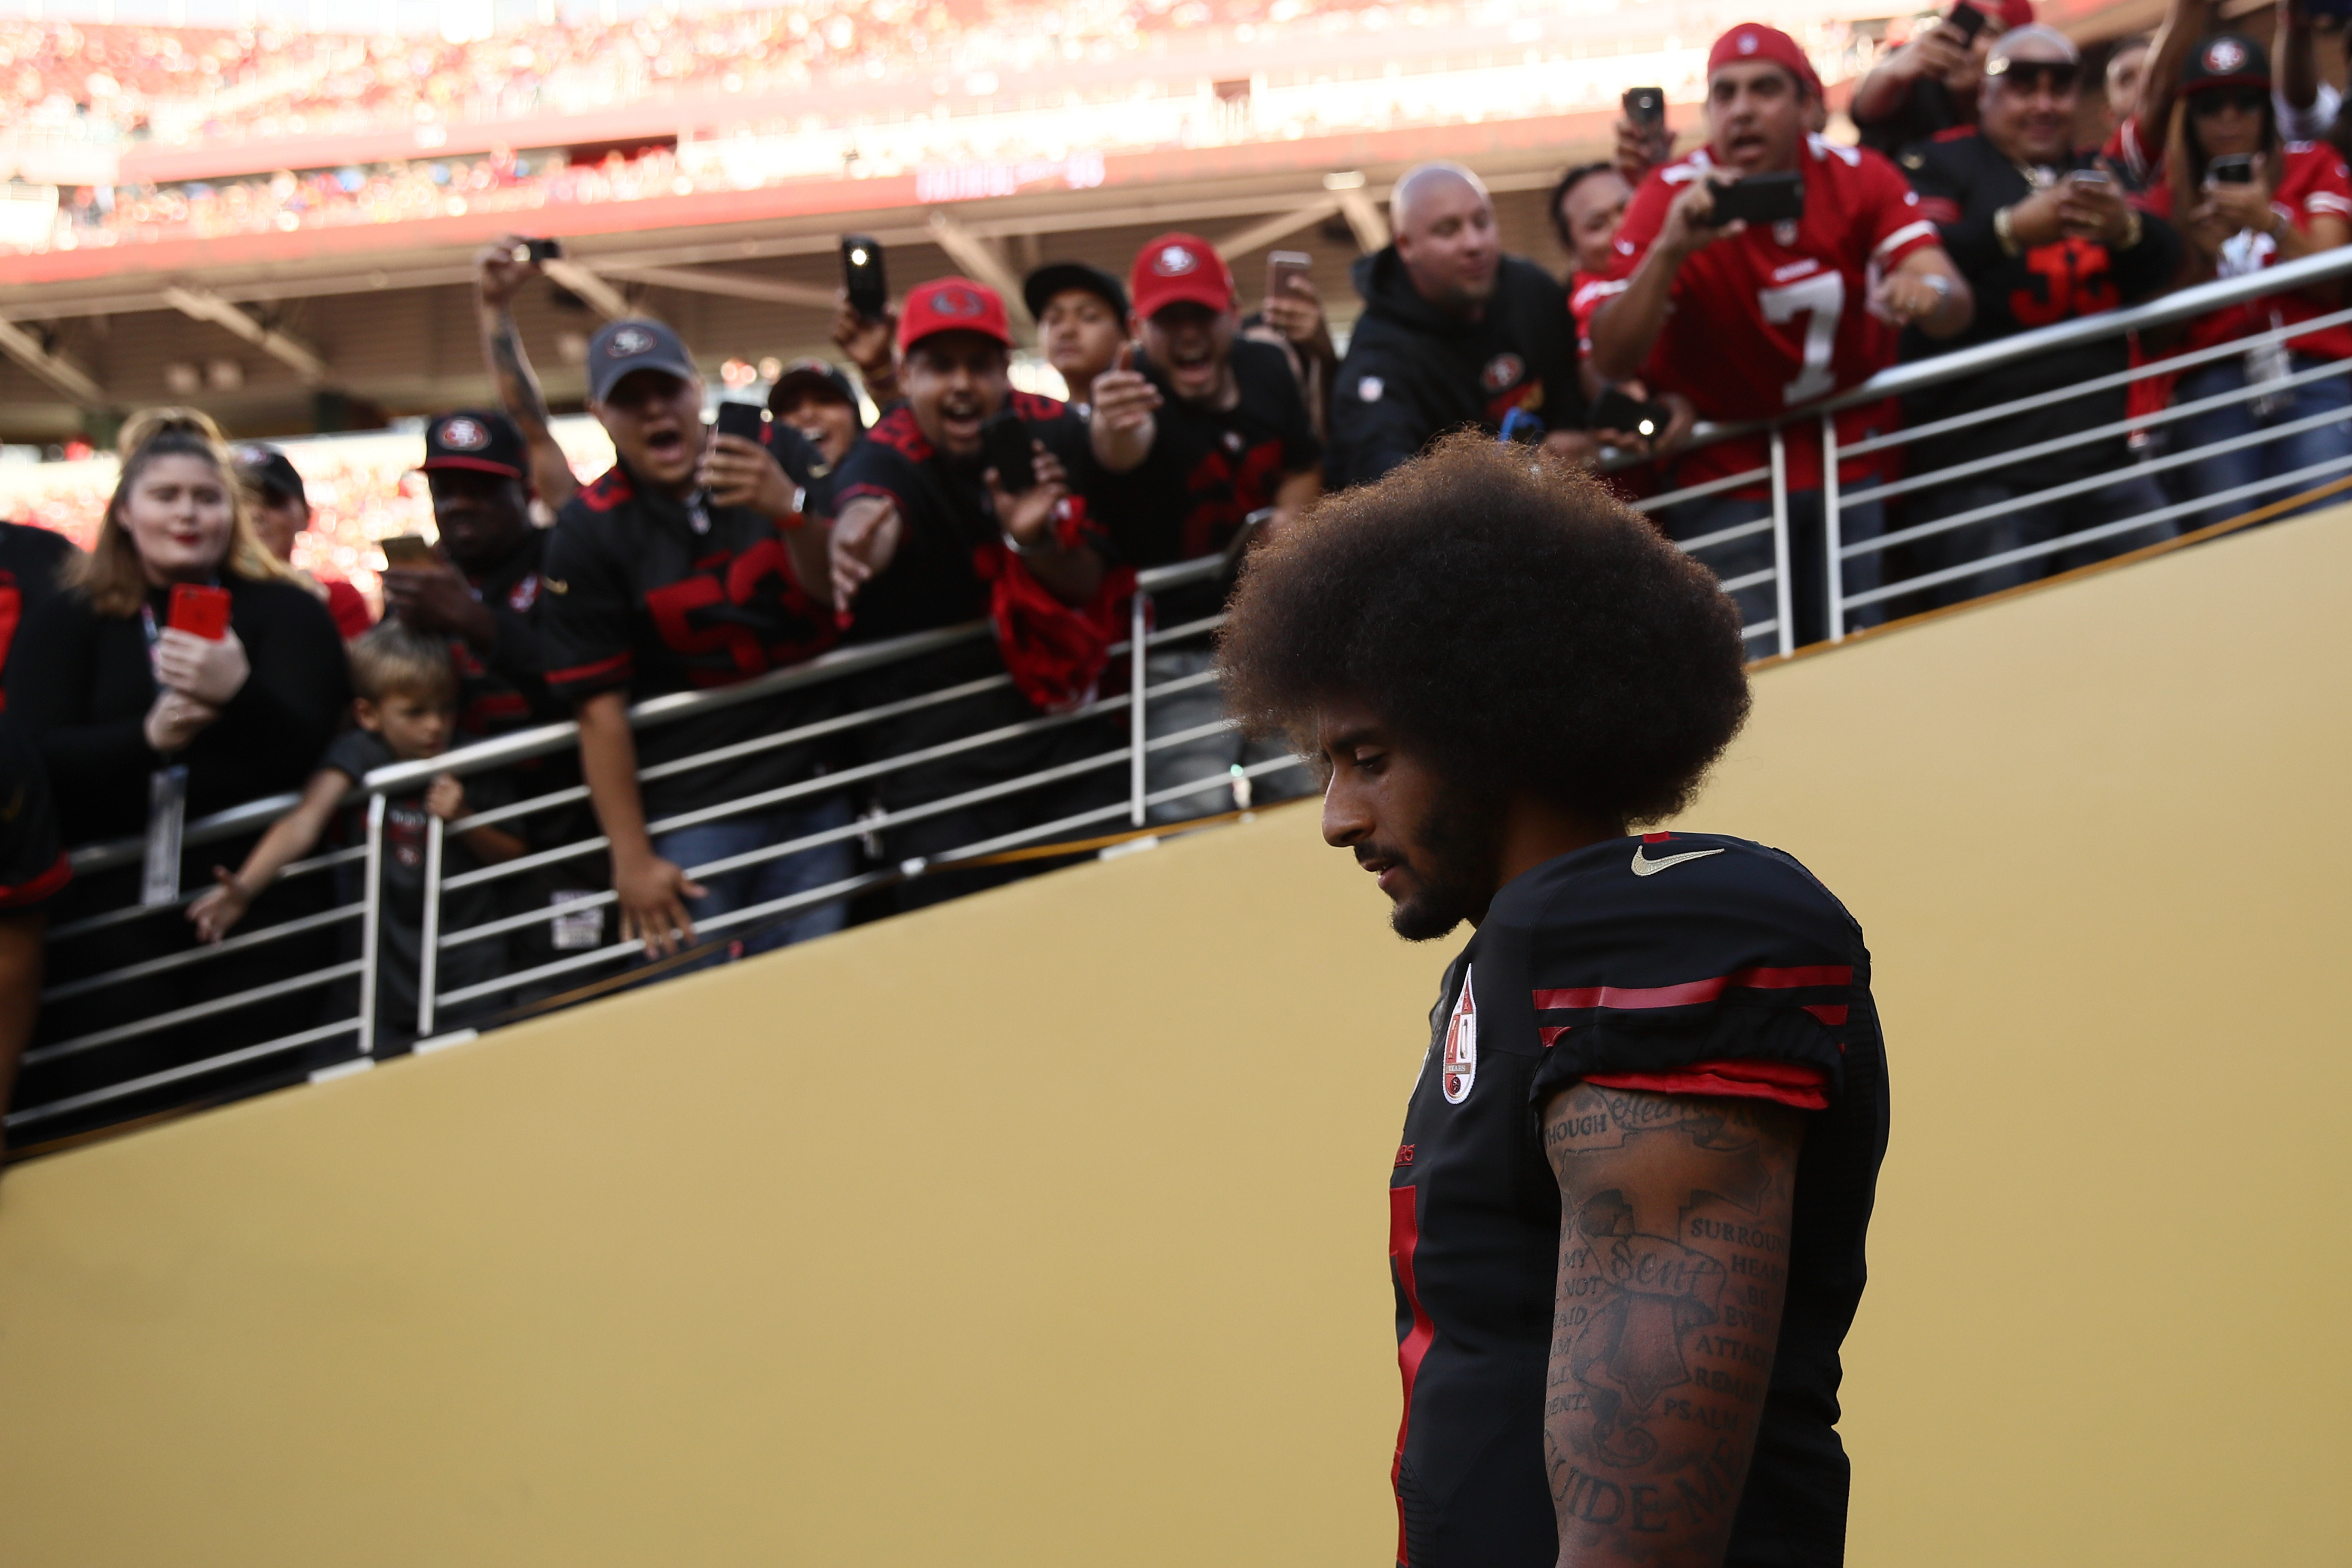 Colin Kaepernick, quarterback for the San Francisco 49ers, walks on the field prior to the team's NFL game on October 6, 2016.